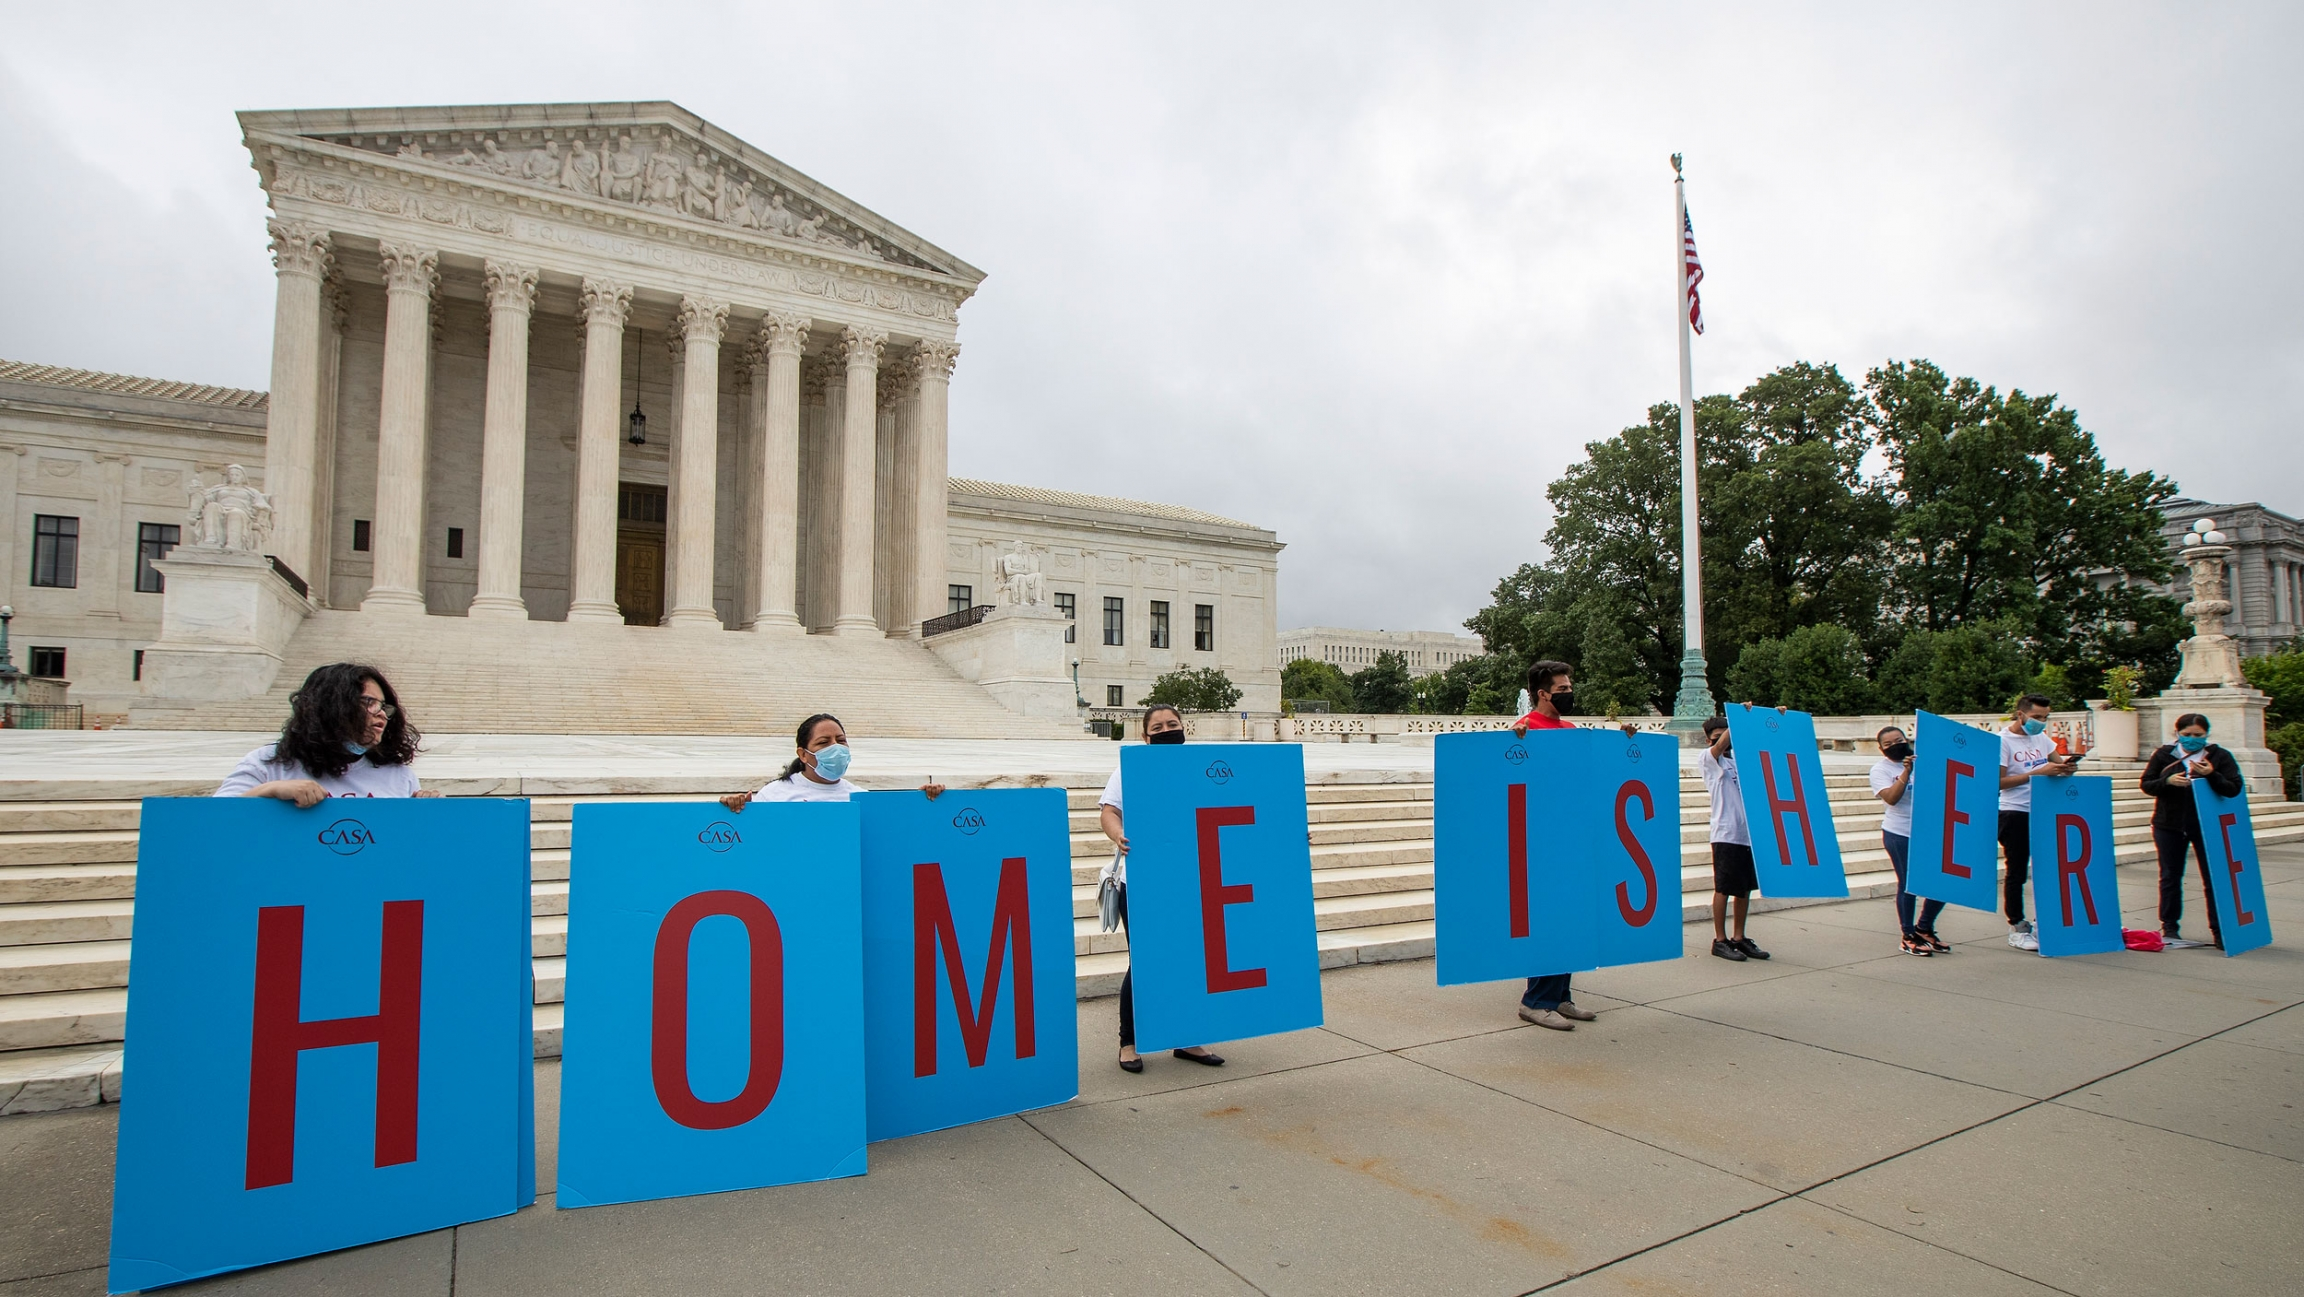 """Several people are shown standing behind large placards that together spell out, """"Home is here."""""""